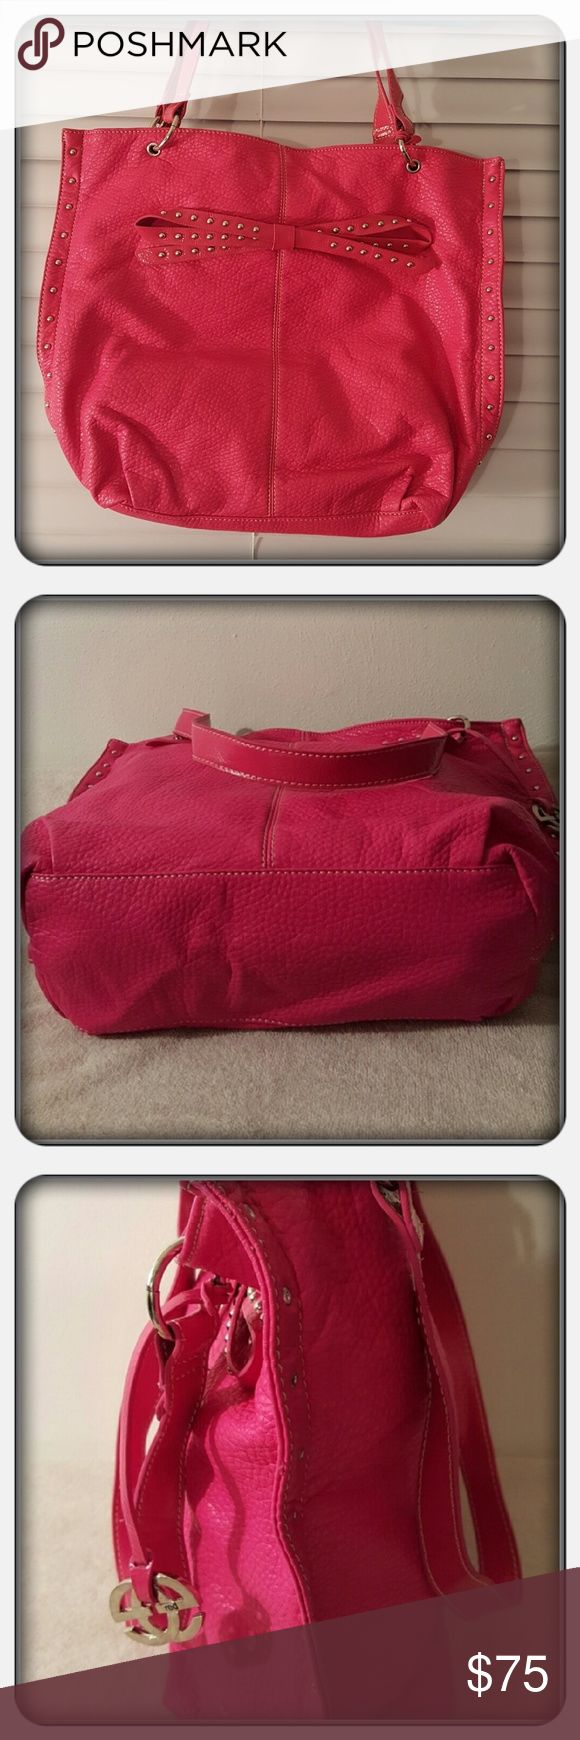 EUC Pink Shoulder Bag By Marc Echo Super Cute Pink Shoulder Bag With Double Straps By Marc Echo. This Purse Has Silver Toned Studs On The Bow And Down The Sides Of The Bag. This Spacious Purse Holler Alot Demonstrated In Above Pictures It Also Has 2 Interior Slip Pockets And 1 Zippered Pocket As Well As Magnetic Closure. Excellent Pre Loved Condition No Flaws Noticed 🚫 PAYPAL 🚫 TRADES 🚫 LOWBALLING ❤ Marc Echo Bags Shoulder Bags